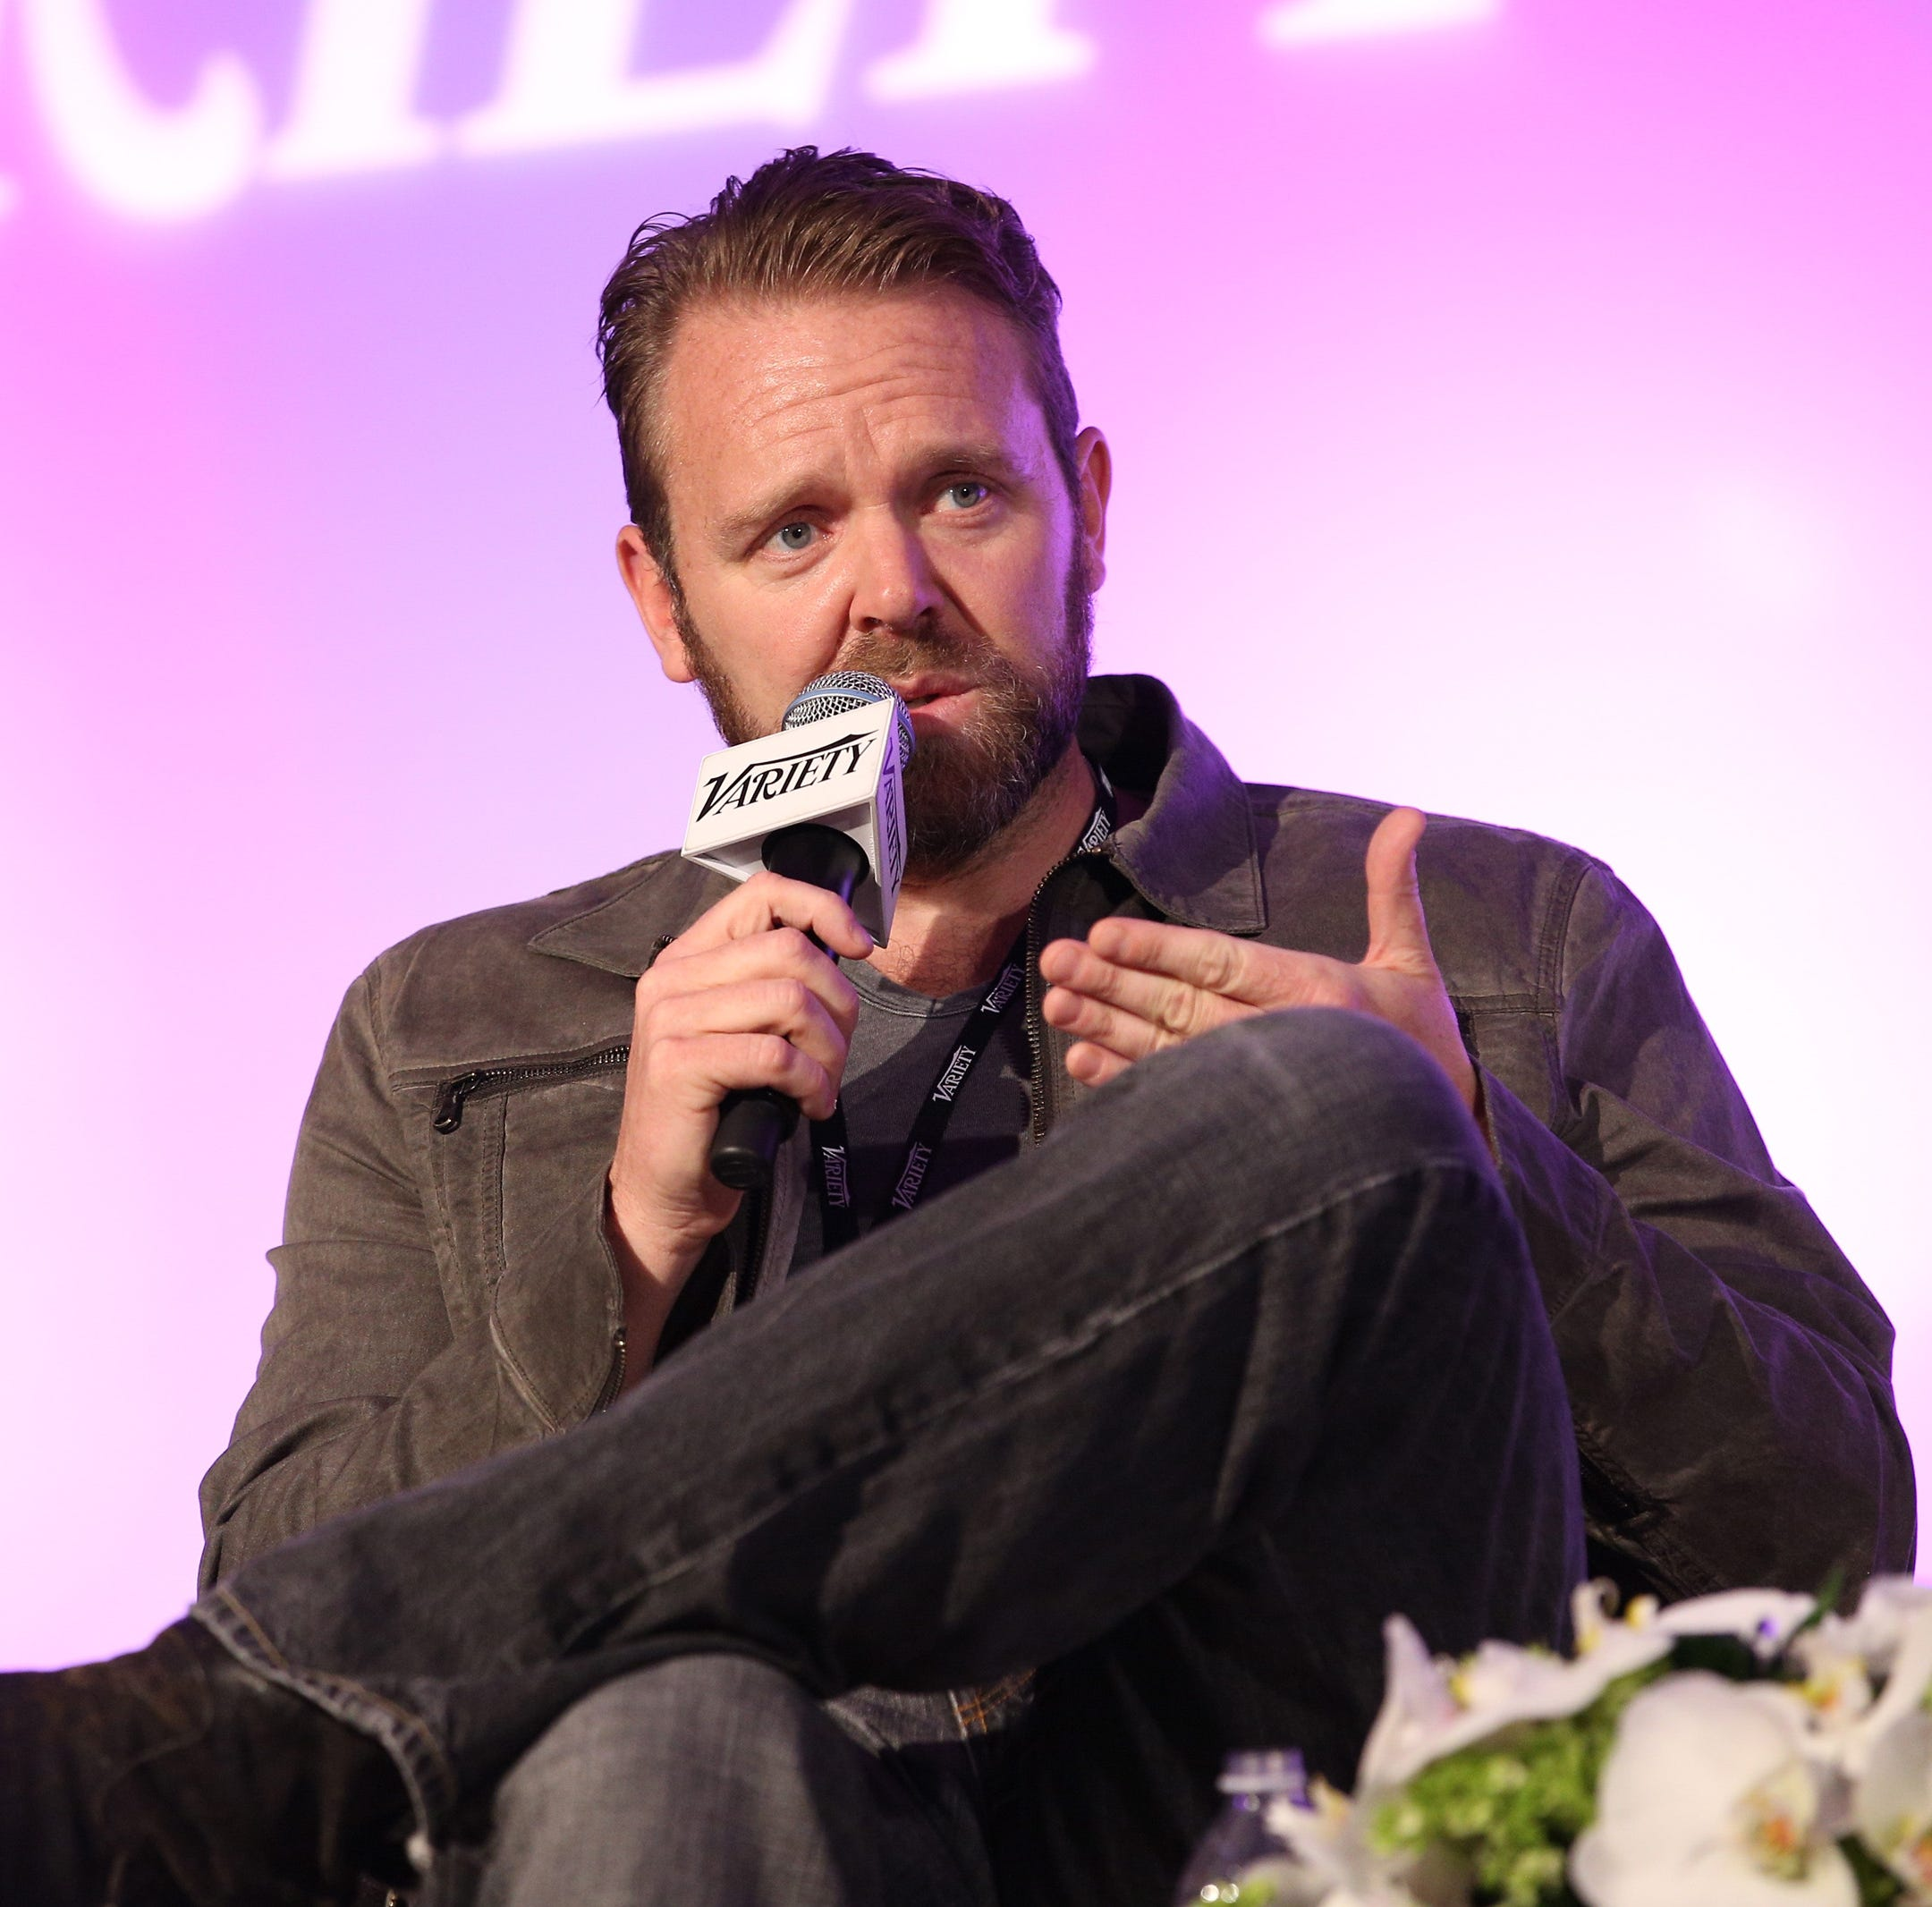 'El Chicano' writer Joe Carnahan attacks critics on Twitter – including me